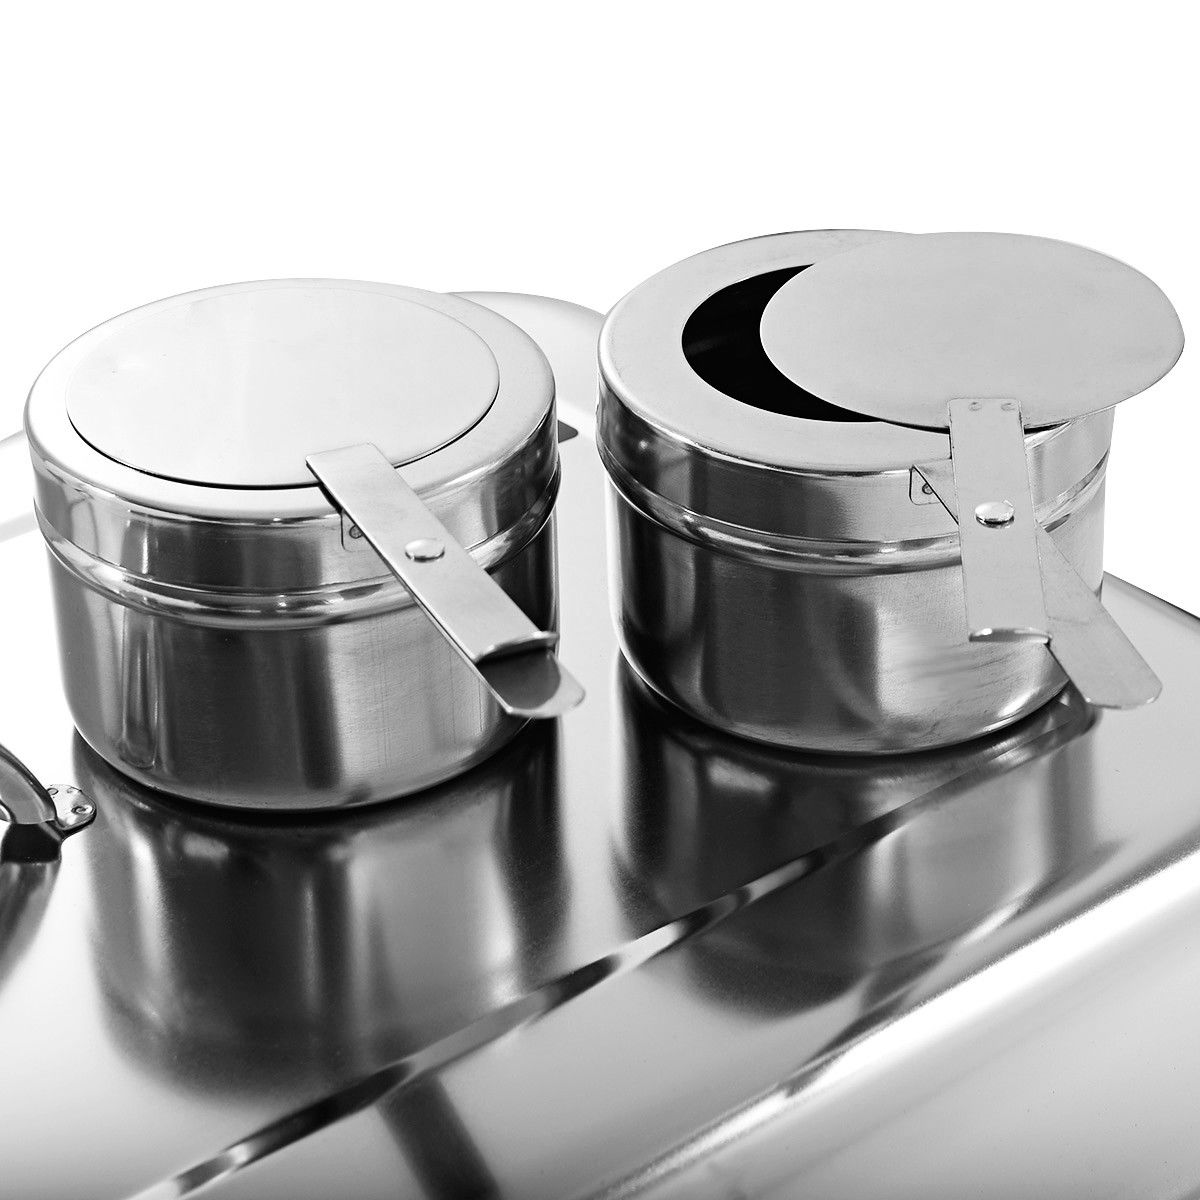 2 Packs Chafing Dish 9 Quart Stainless Steel Rectangular Chafer Full Size Buffet - image 4 of 10